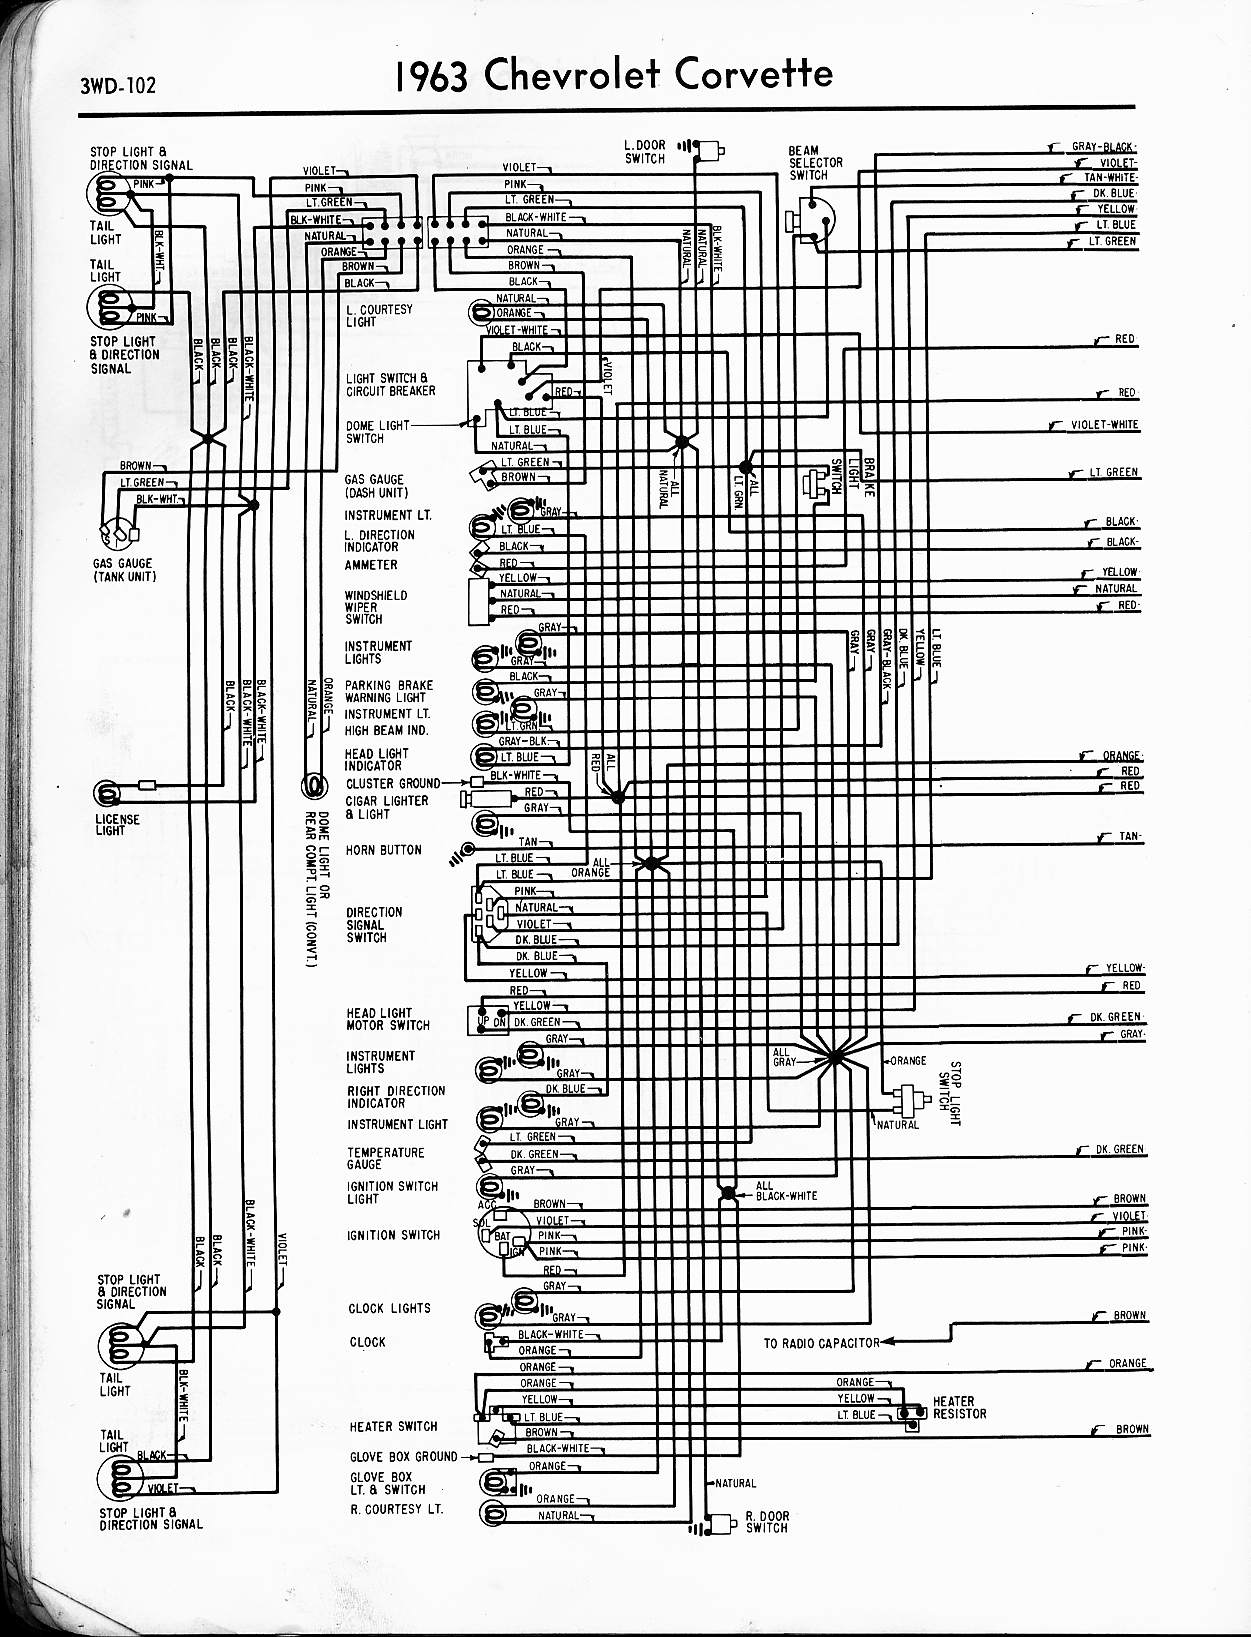 1964 Corvette Starter Wiring Diagram Guide And Troubleshooting Of 1970 Gmc 57 65 Chevy Diagrams Rh Oldcarmanualproject Com 1965